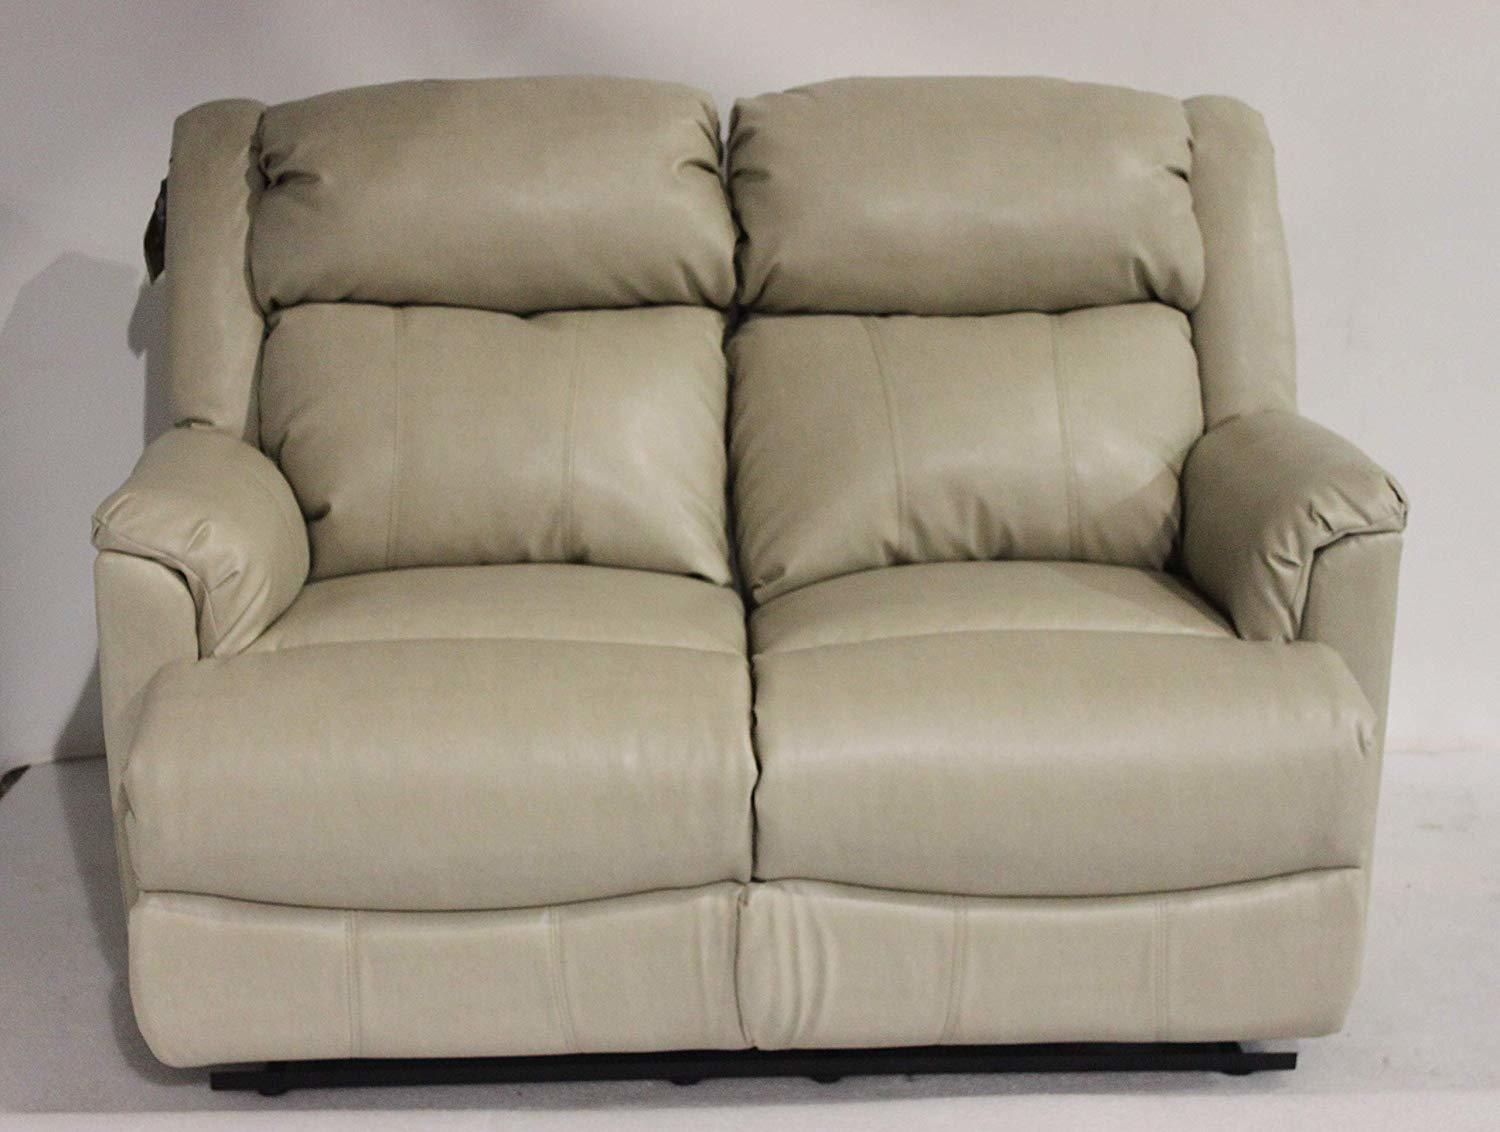 Wondrous 5 La Z Boy Recliners For Your Every Need Cuddly Home Advisors Caraccident5 Cool Chair Designs And Ideas Caraccident5Info